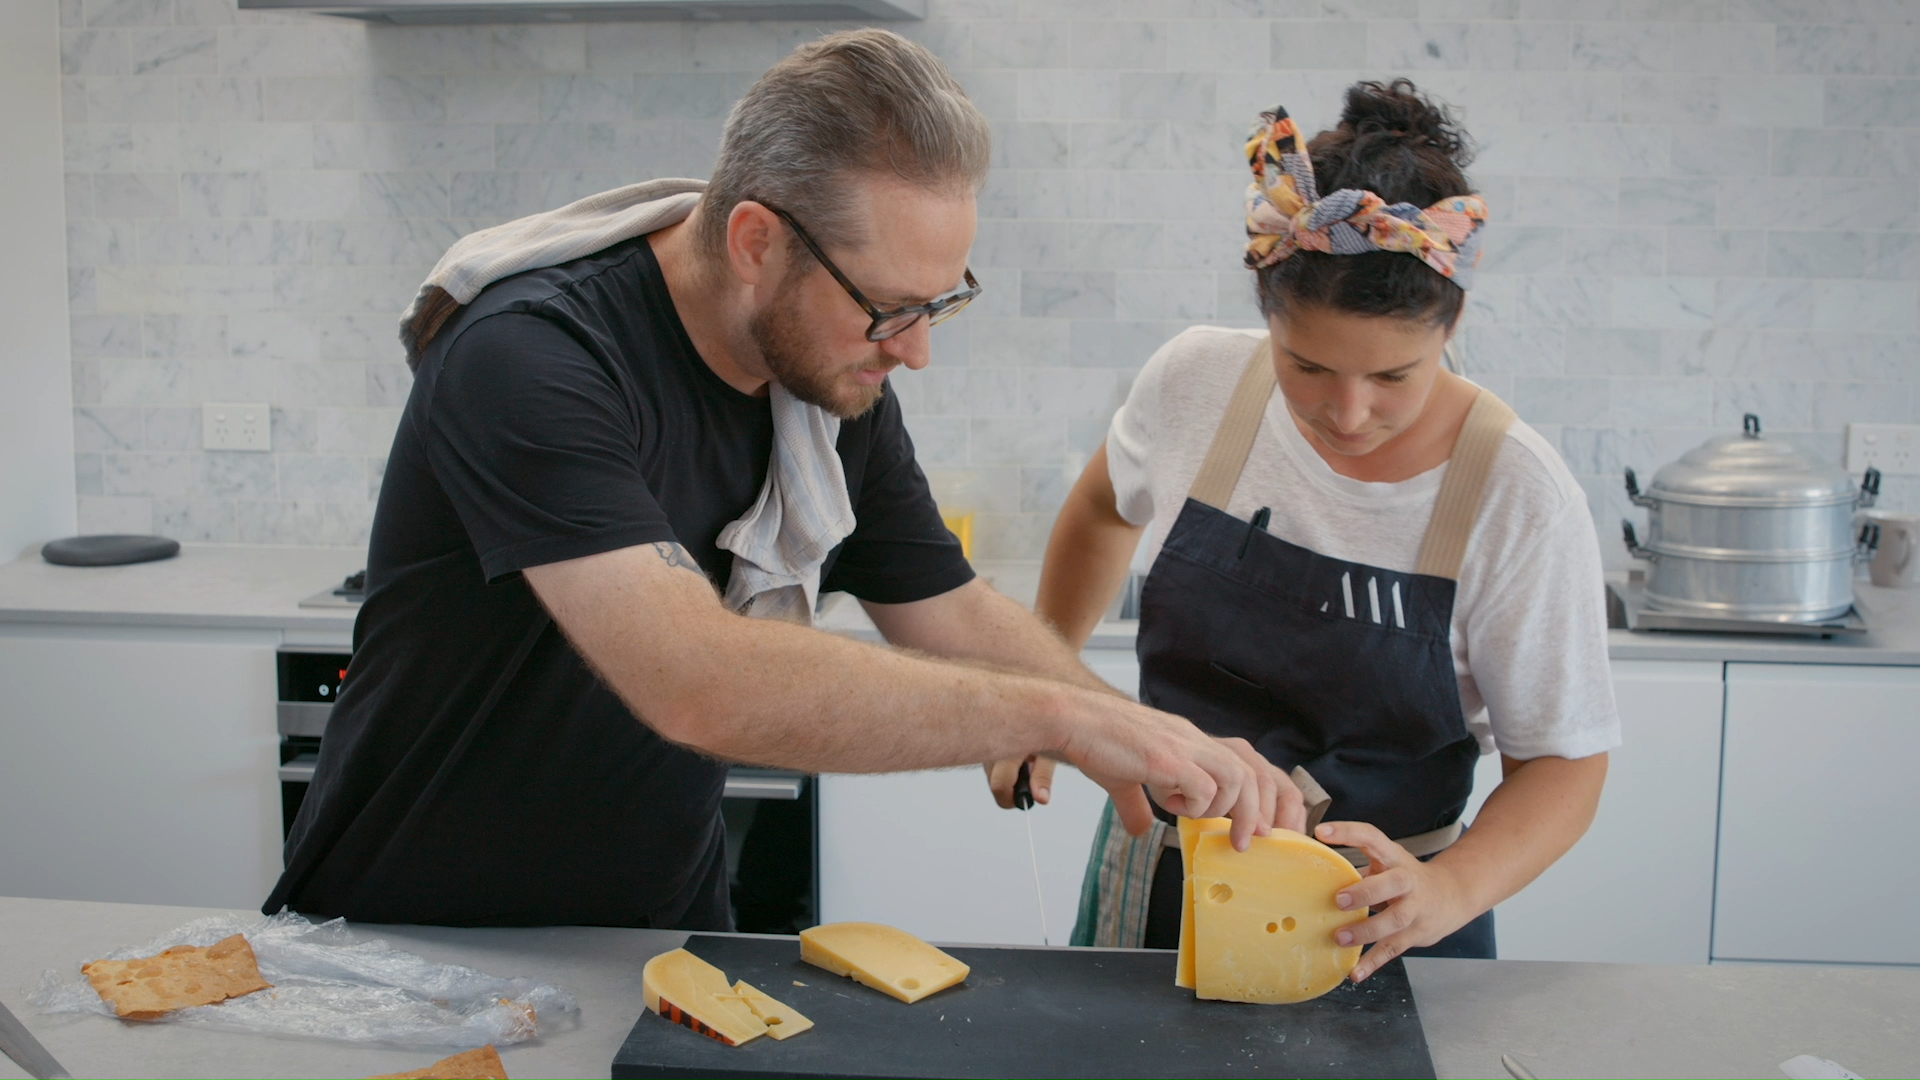 Top chefs Analiese Gregory and Clayton Wells launch Tastebuds